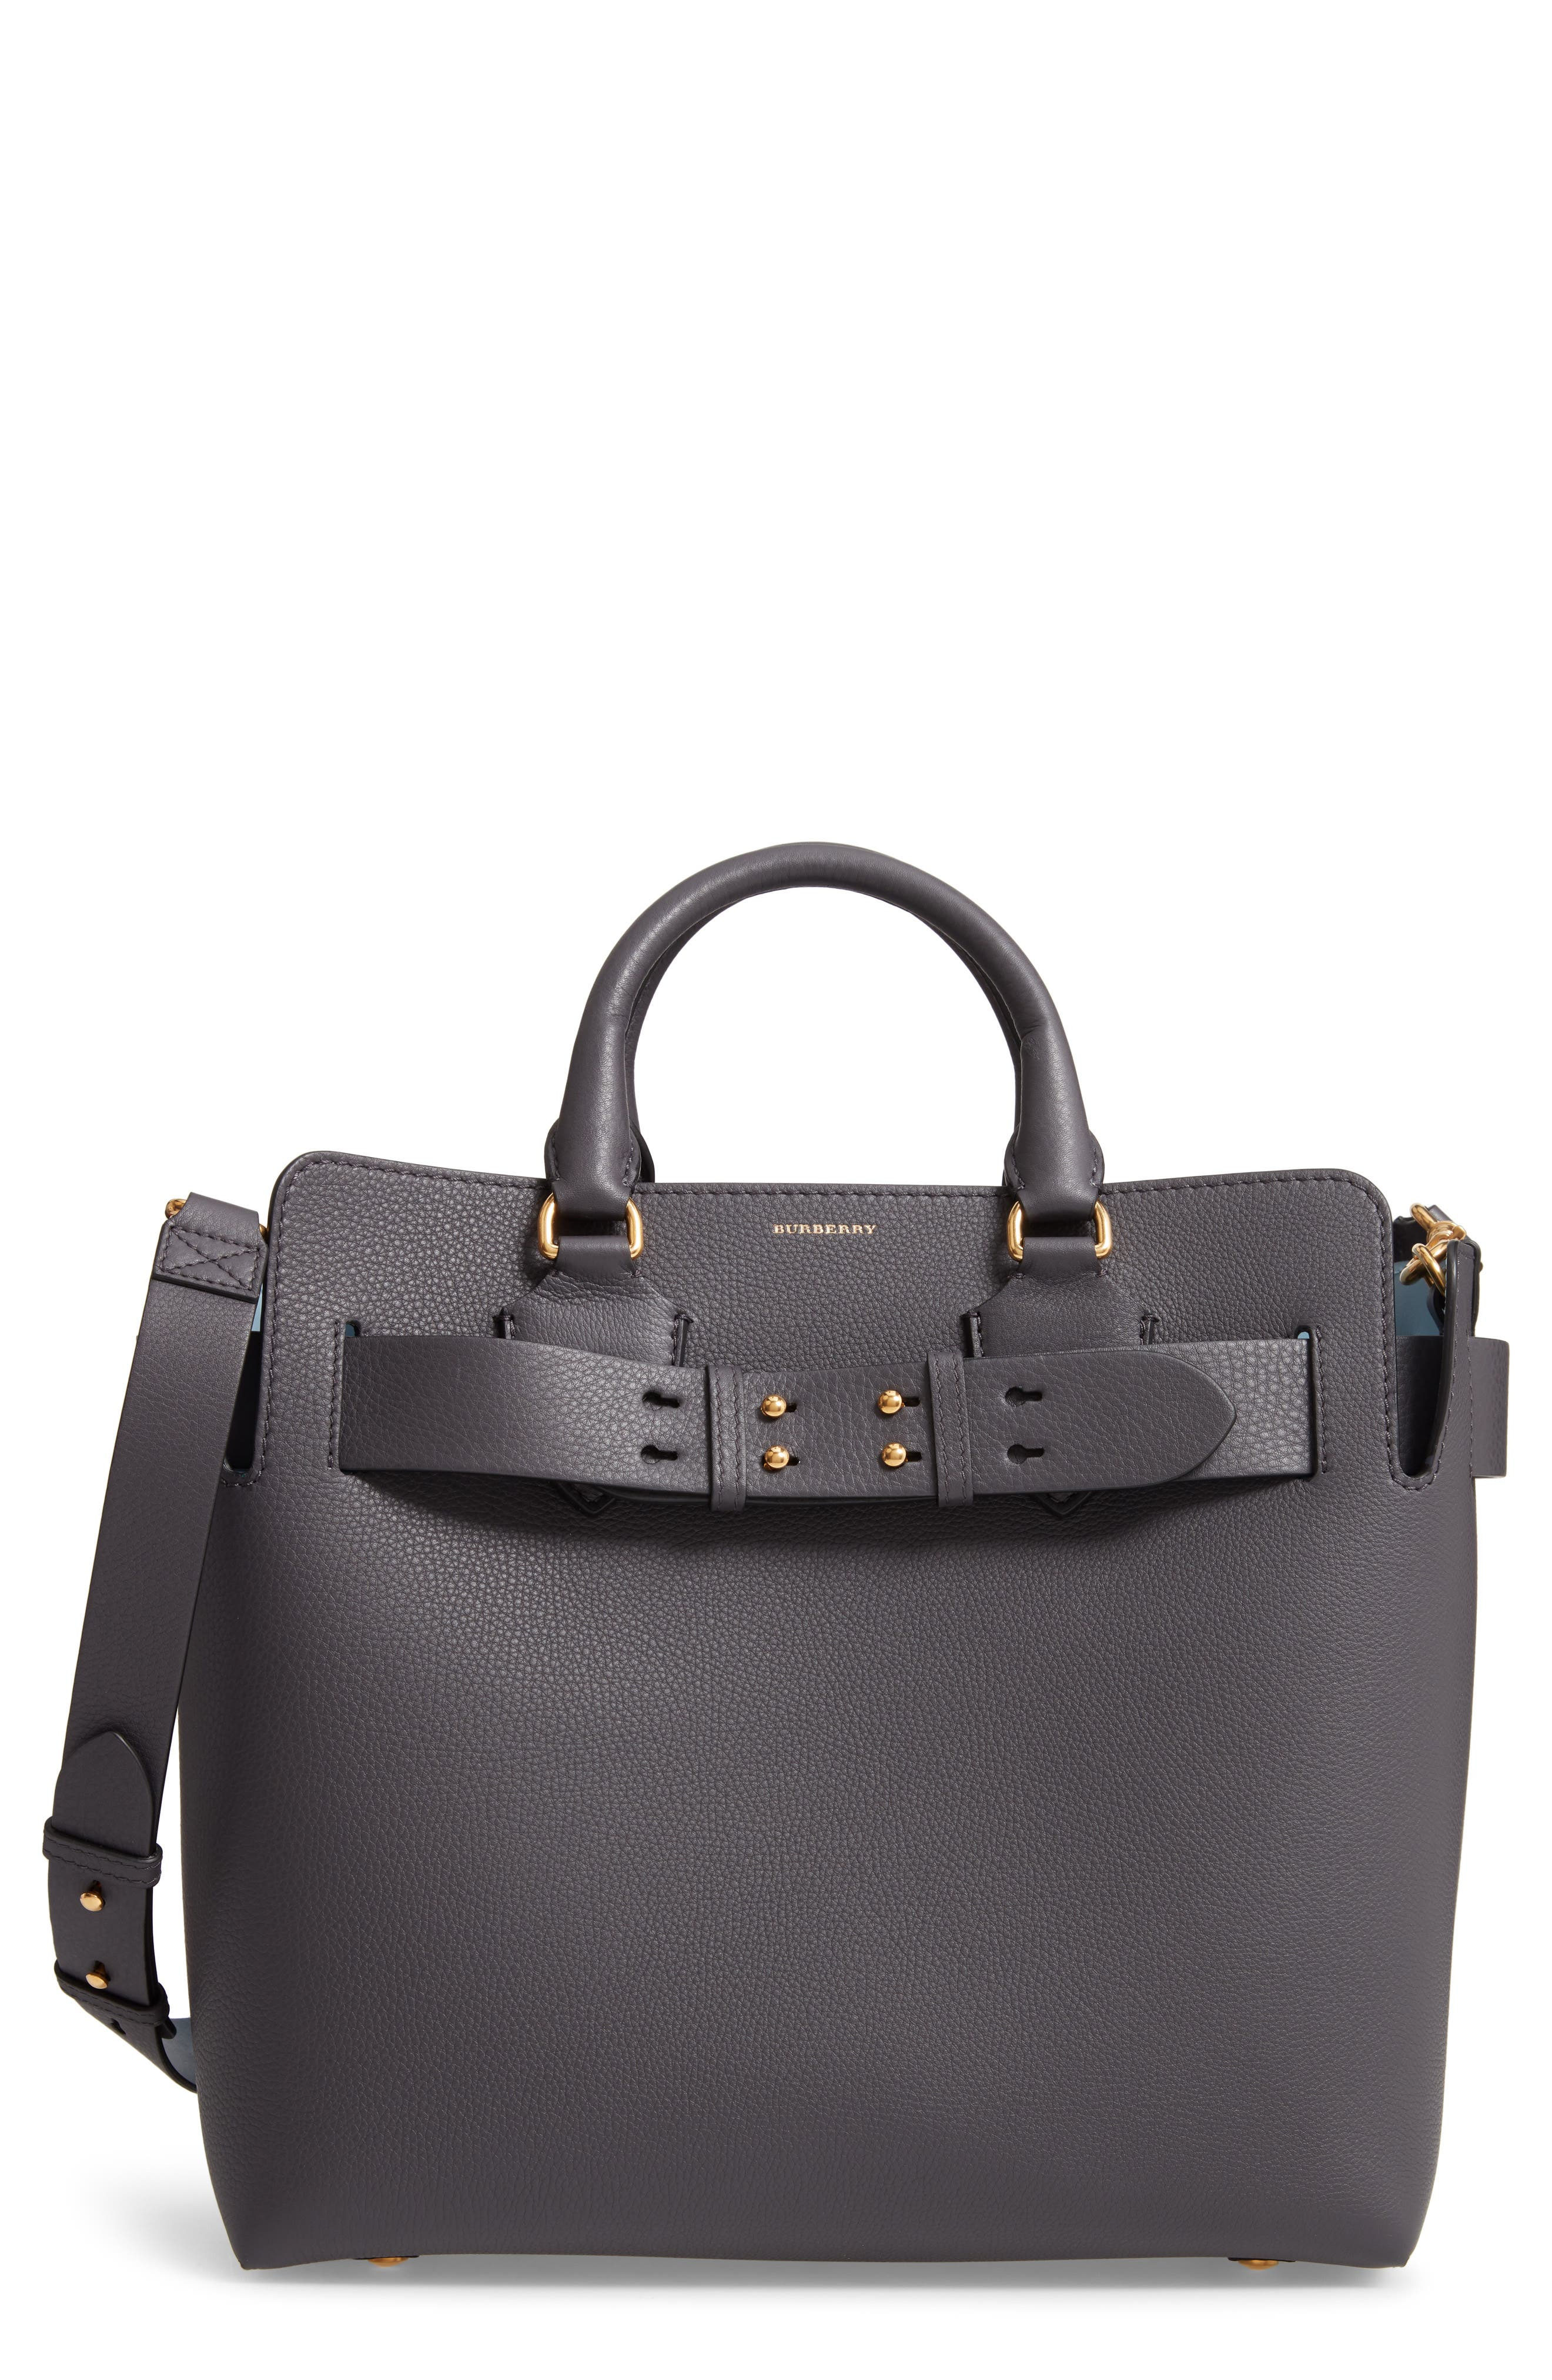 Medium Leather Belted Bag,                         Main,                         color, CHARCOAL GREY